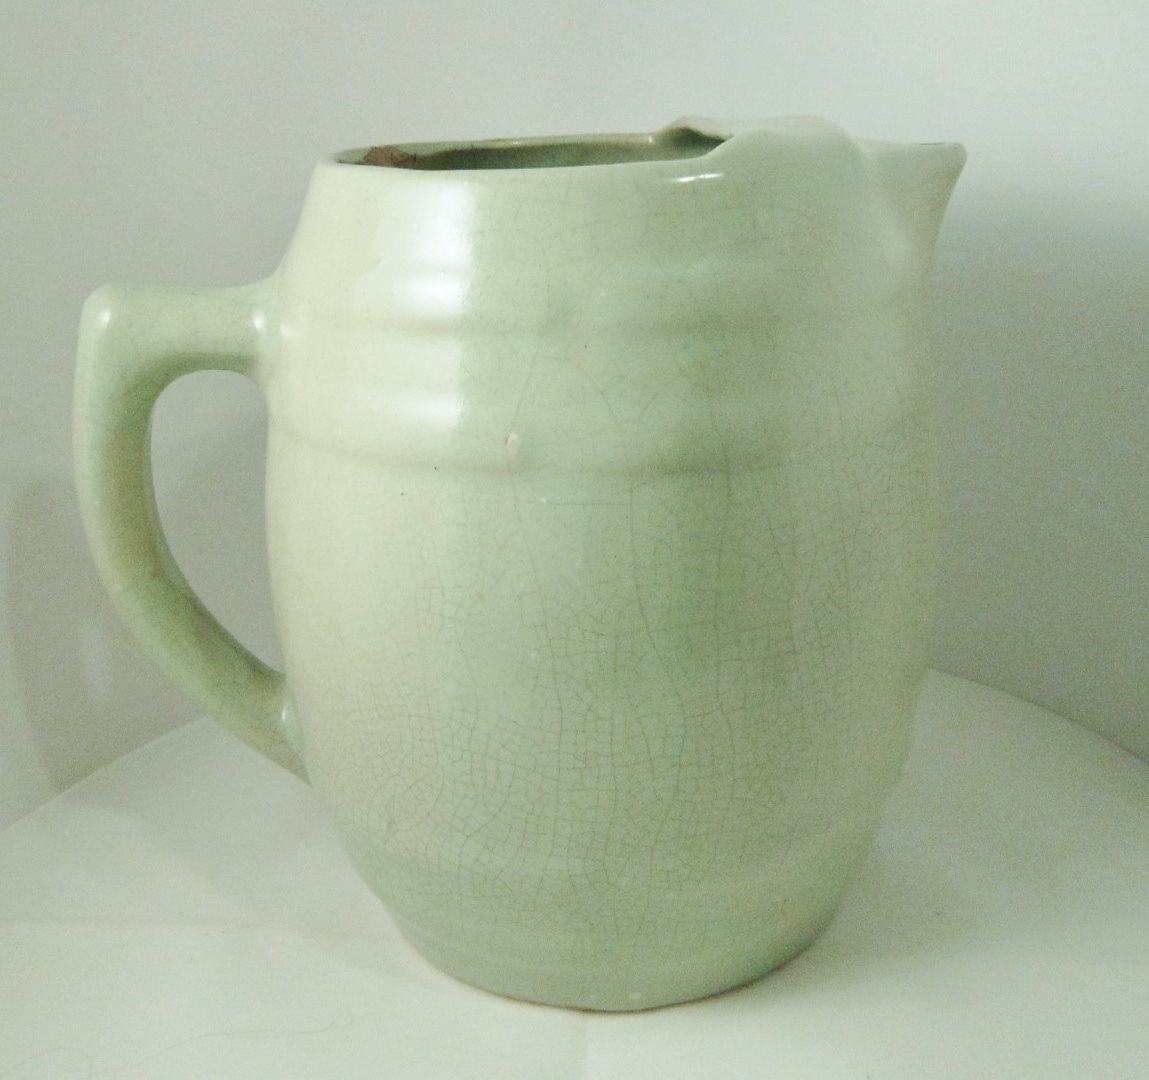 Uhl Pottery Barrel Pitcher Ice Lip Vintage American Stoneware Lemonade